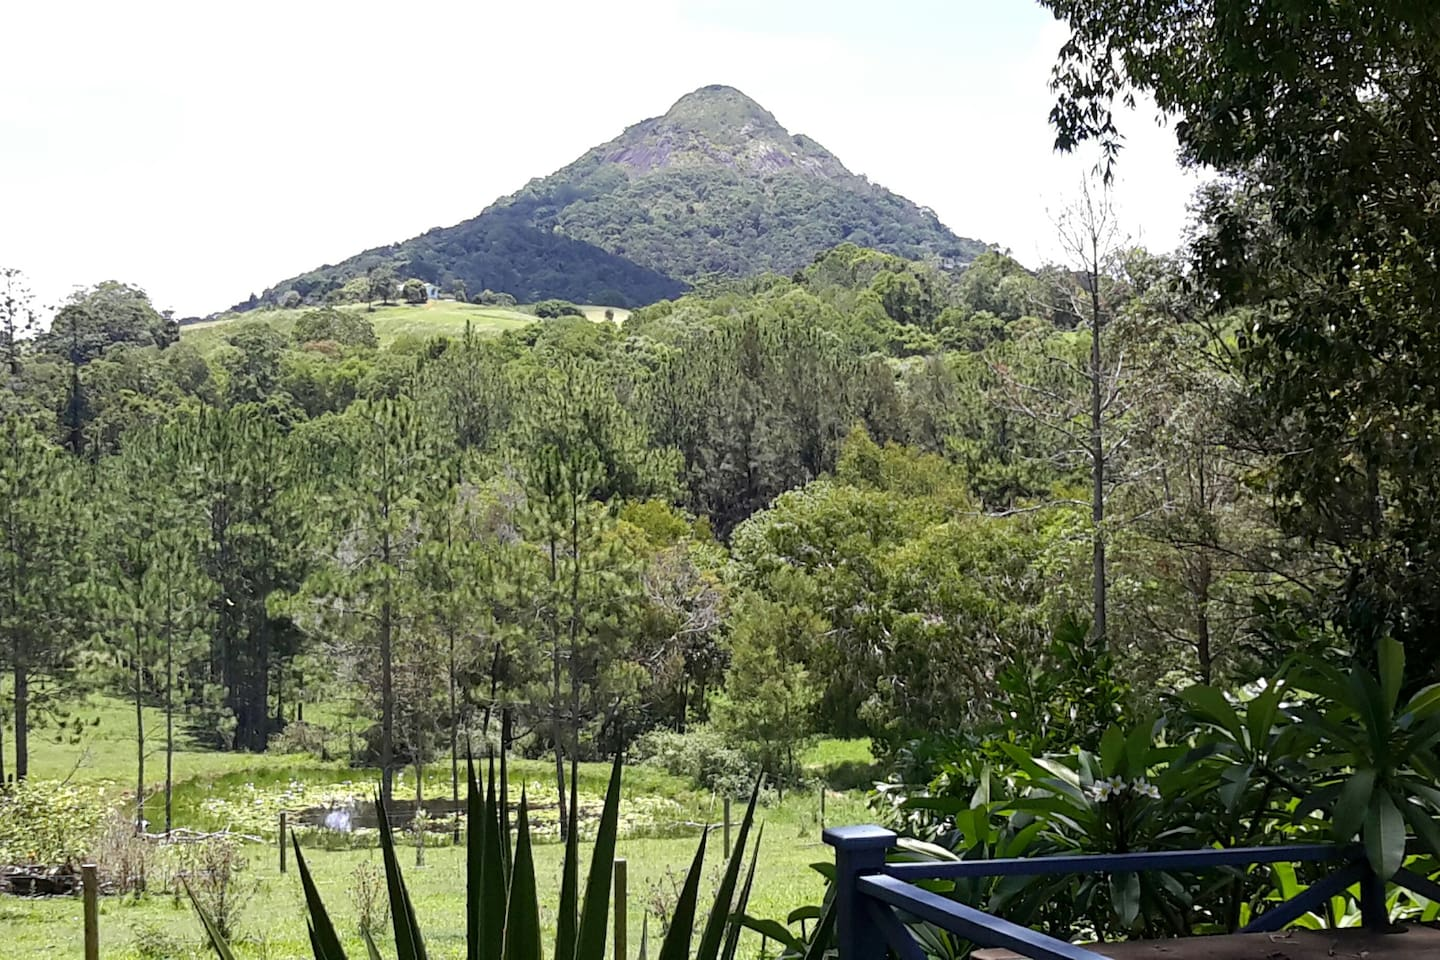 You will find it hard to look away from this beautiful view from your private verandah